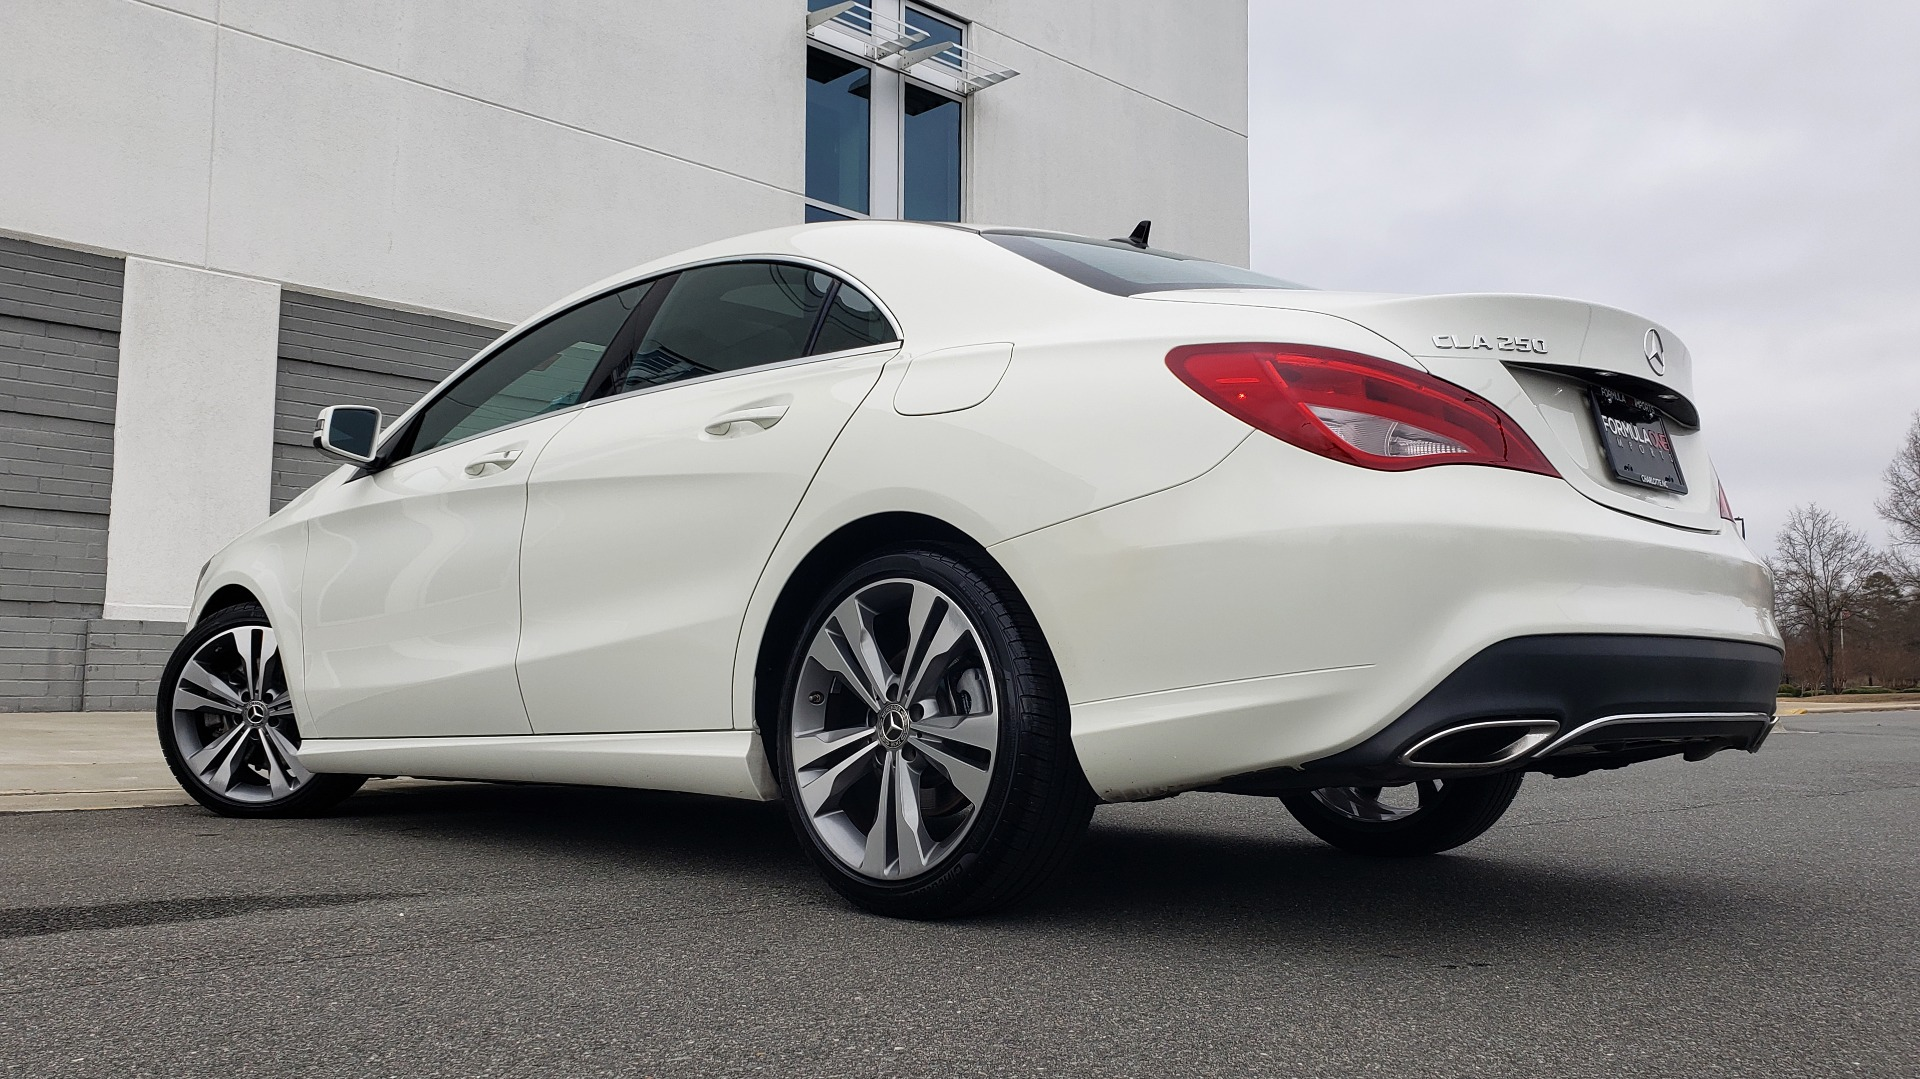 Used 2018 Mercedes-Benz CLA 250 PREMIUM / NAV / PANO-ROOF / APPLE CARPLAY / REARVIEW for sale $23,995 at Formula Imports in Charlotte NC 28227 2